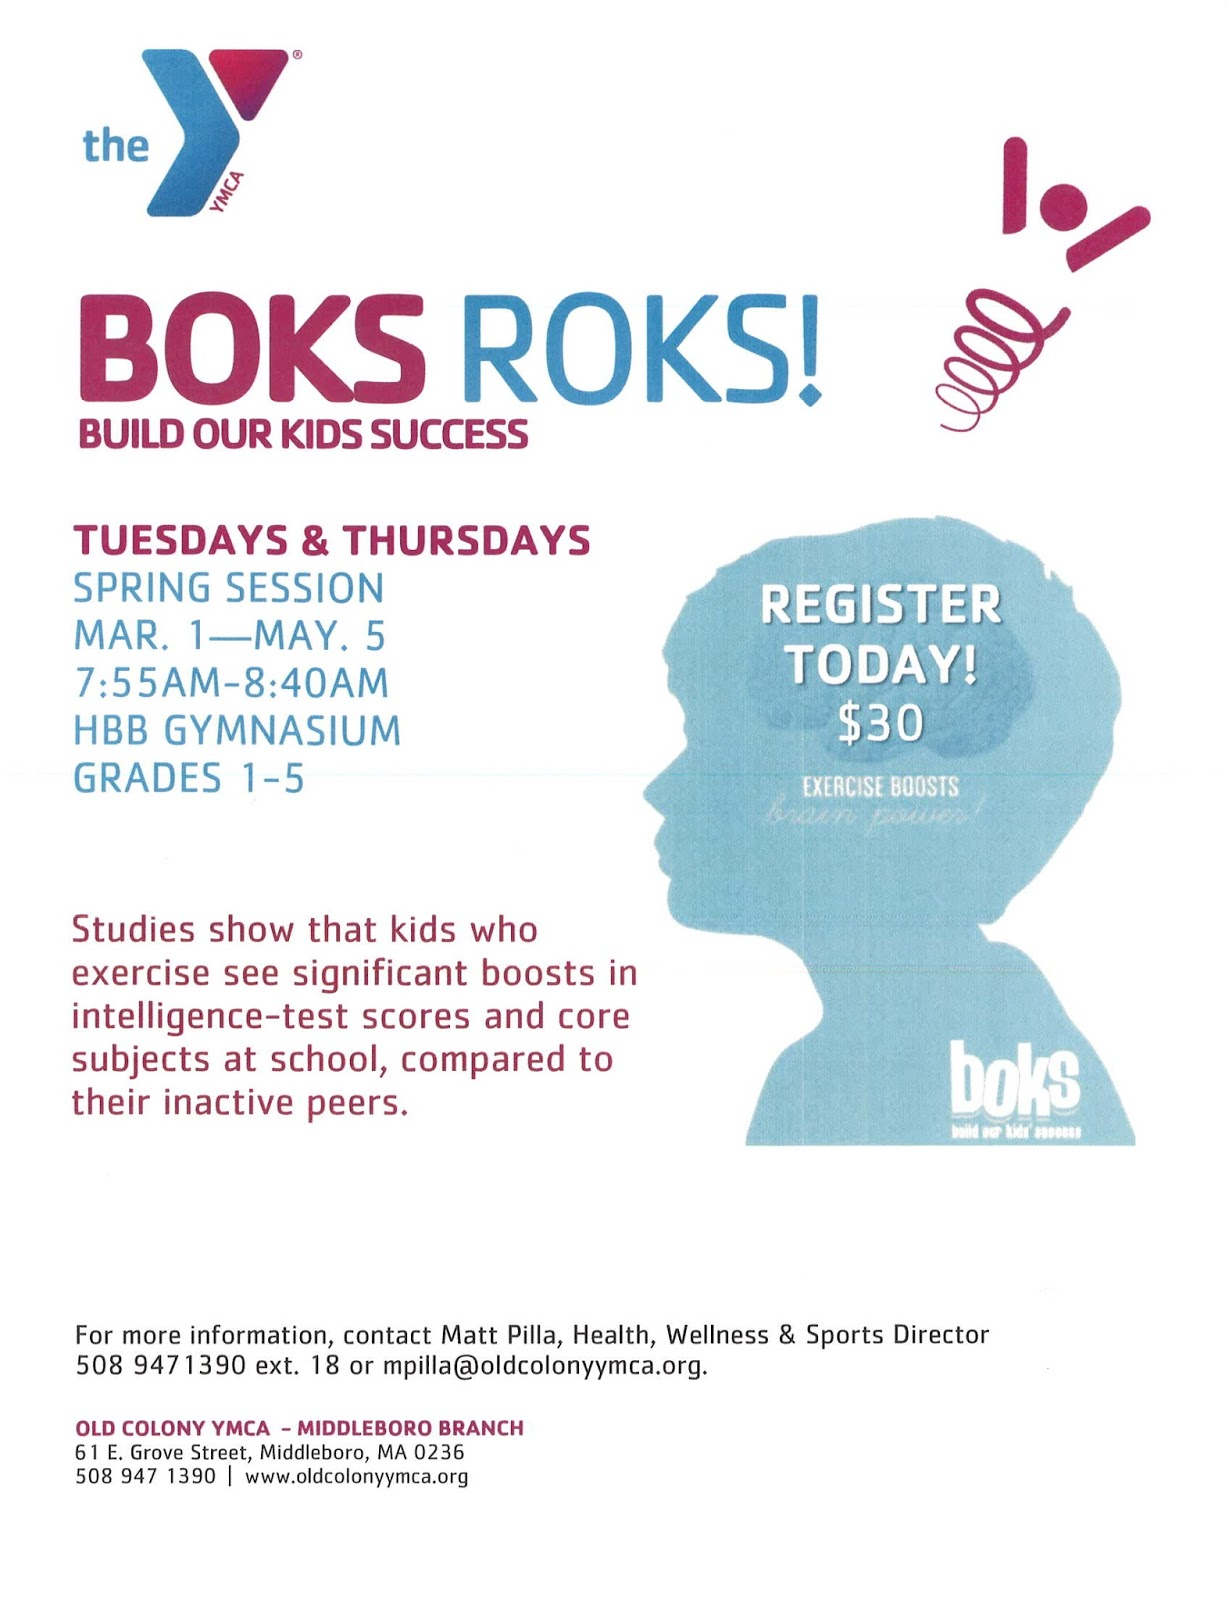 Welcome to HBB: National Heart Health Month and BOKS